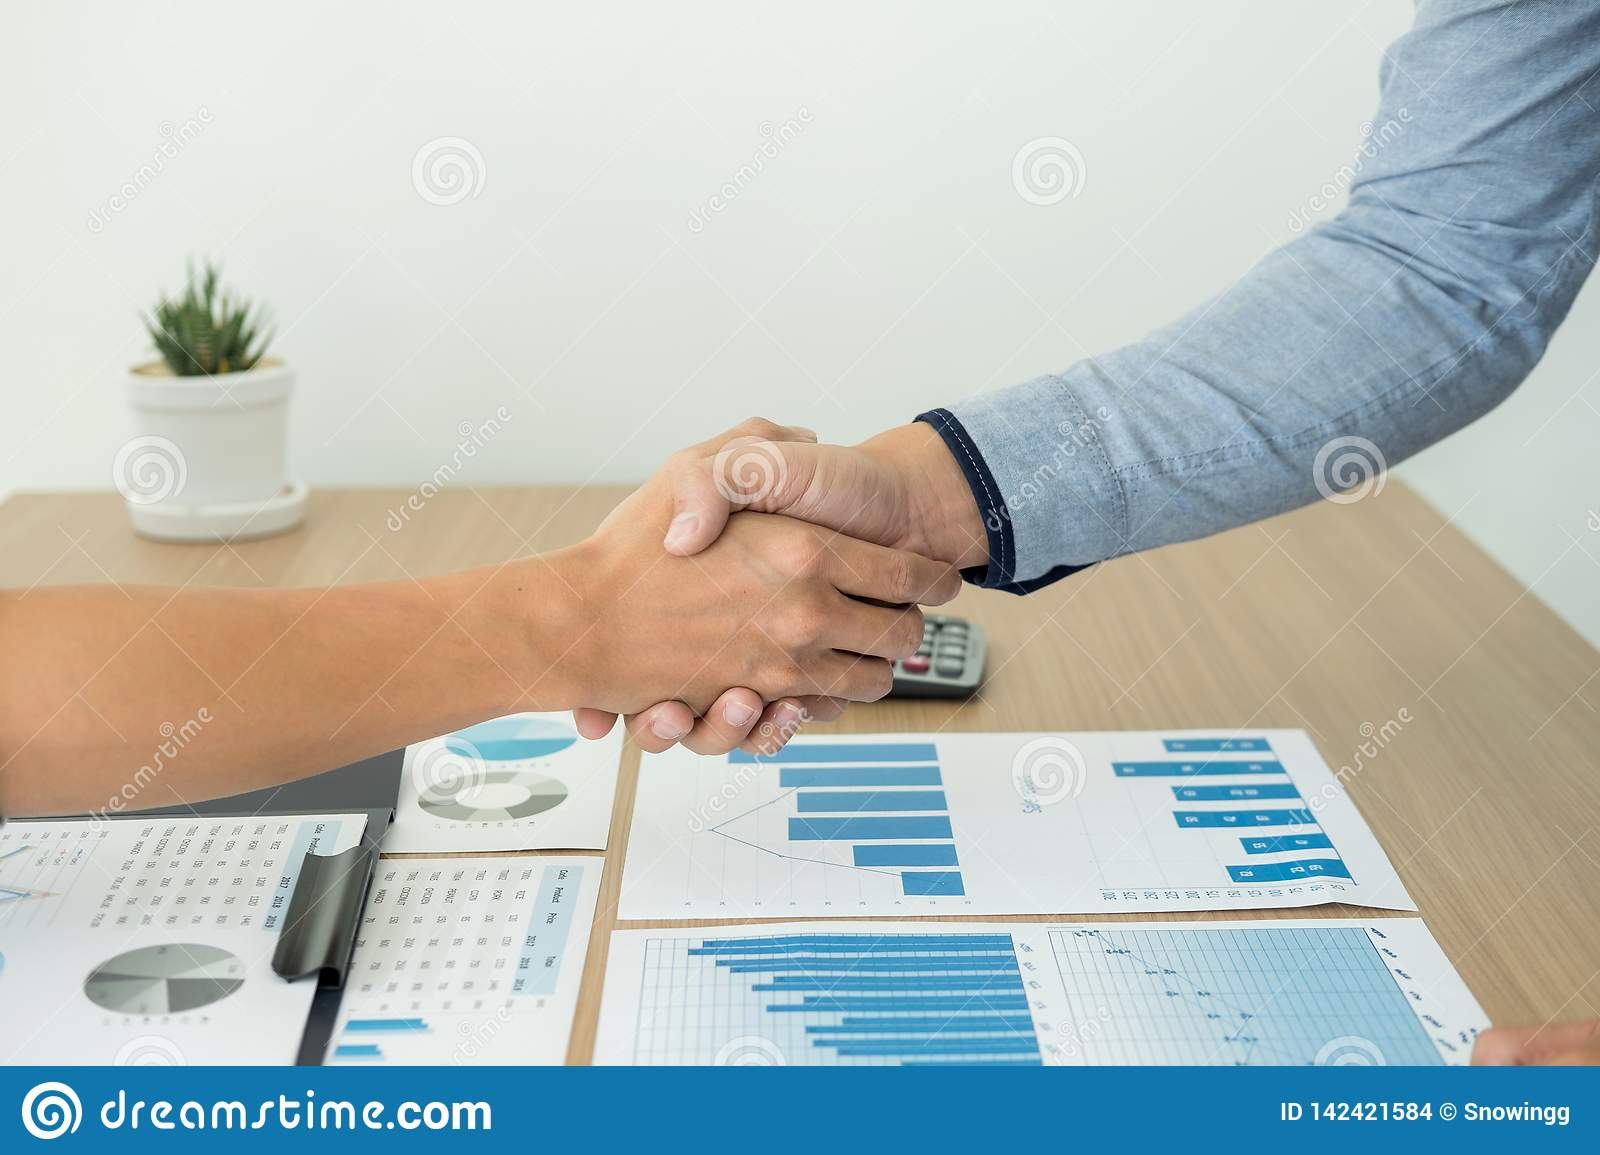 Dealing greeting and partnership meeting concept, businessmen handshaking after finishing up deal contract for both companies